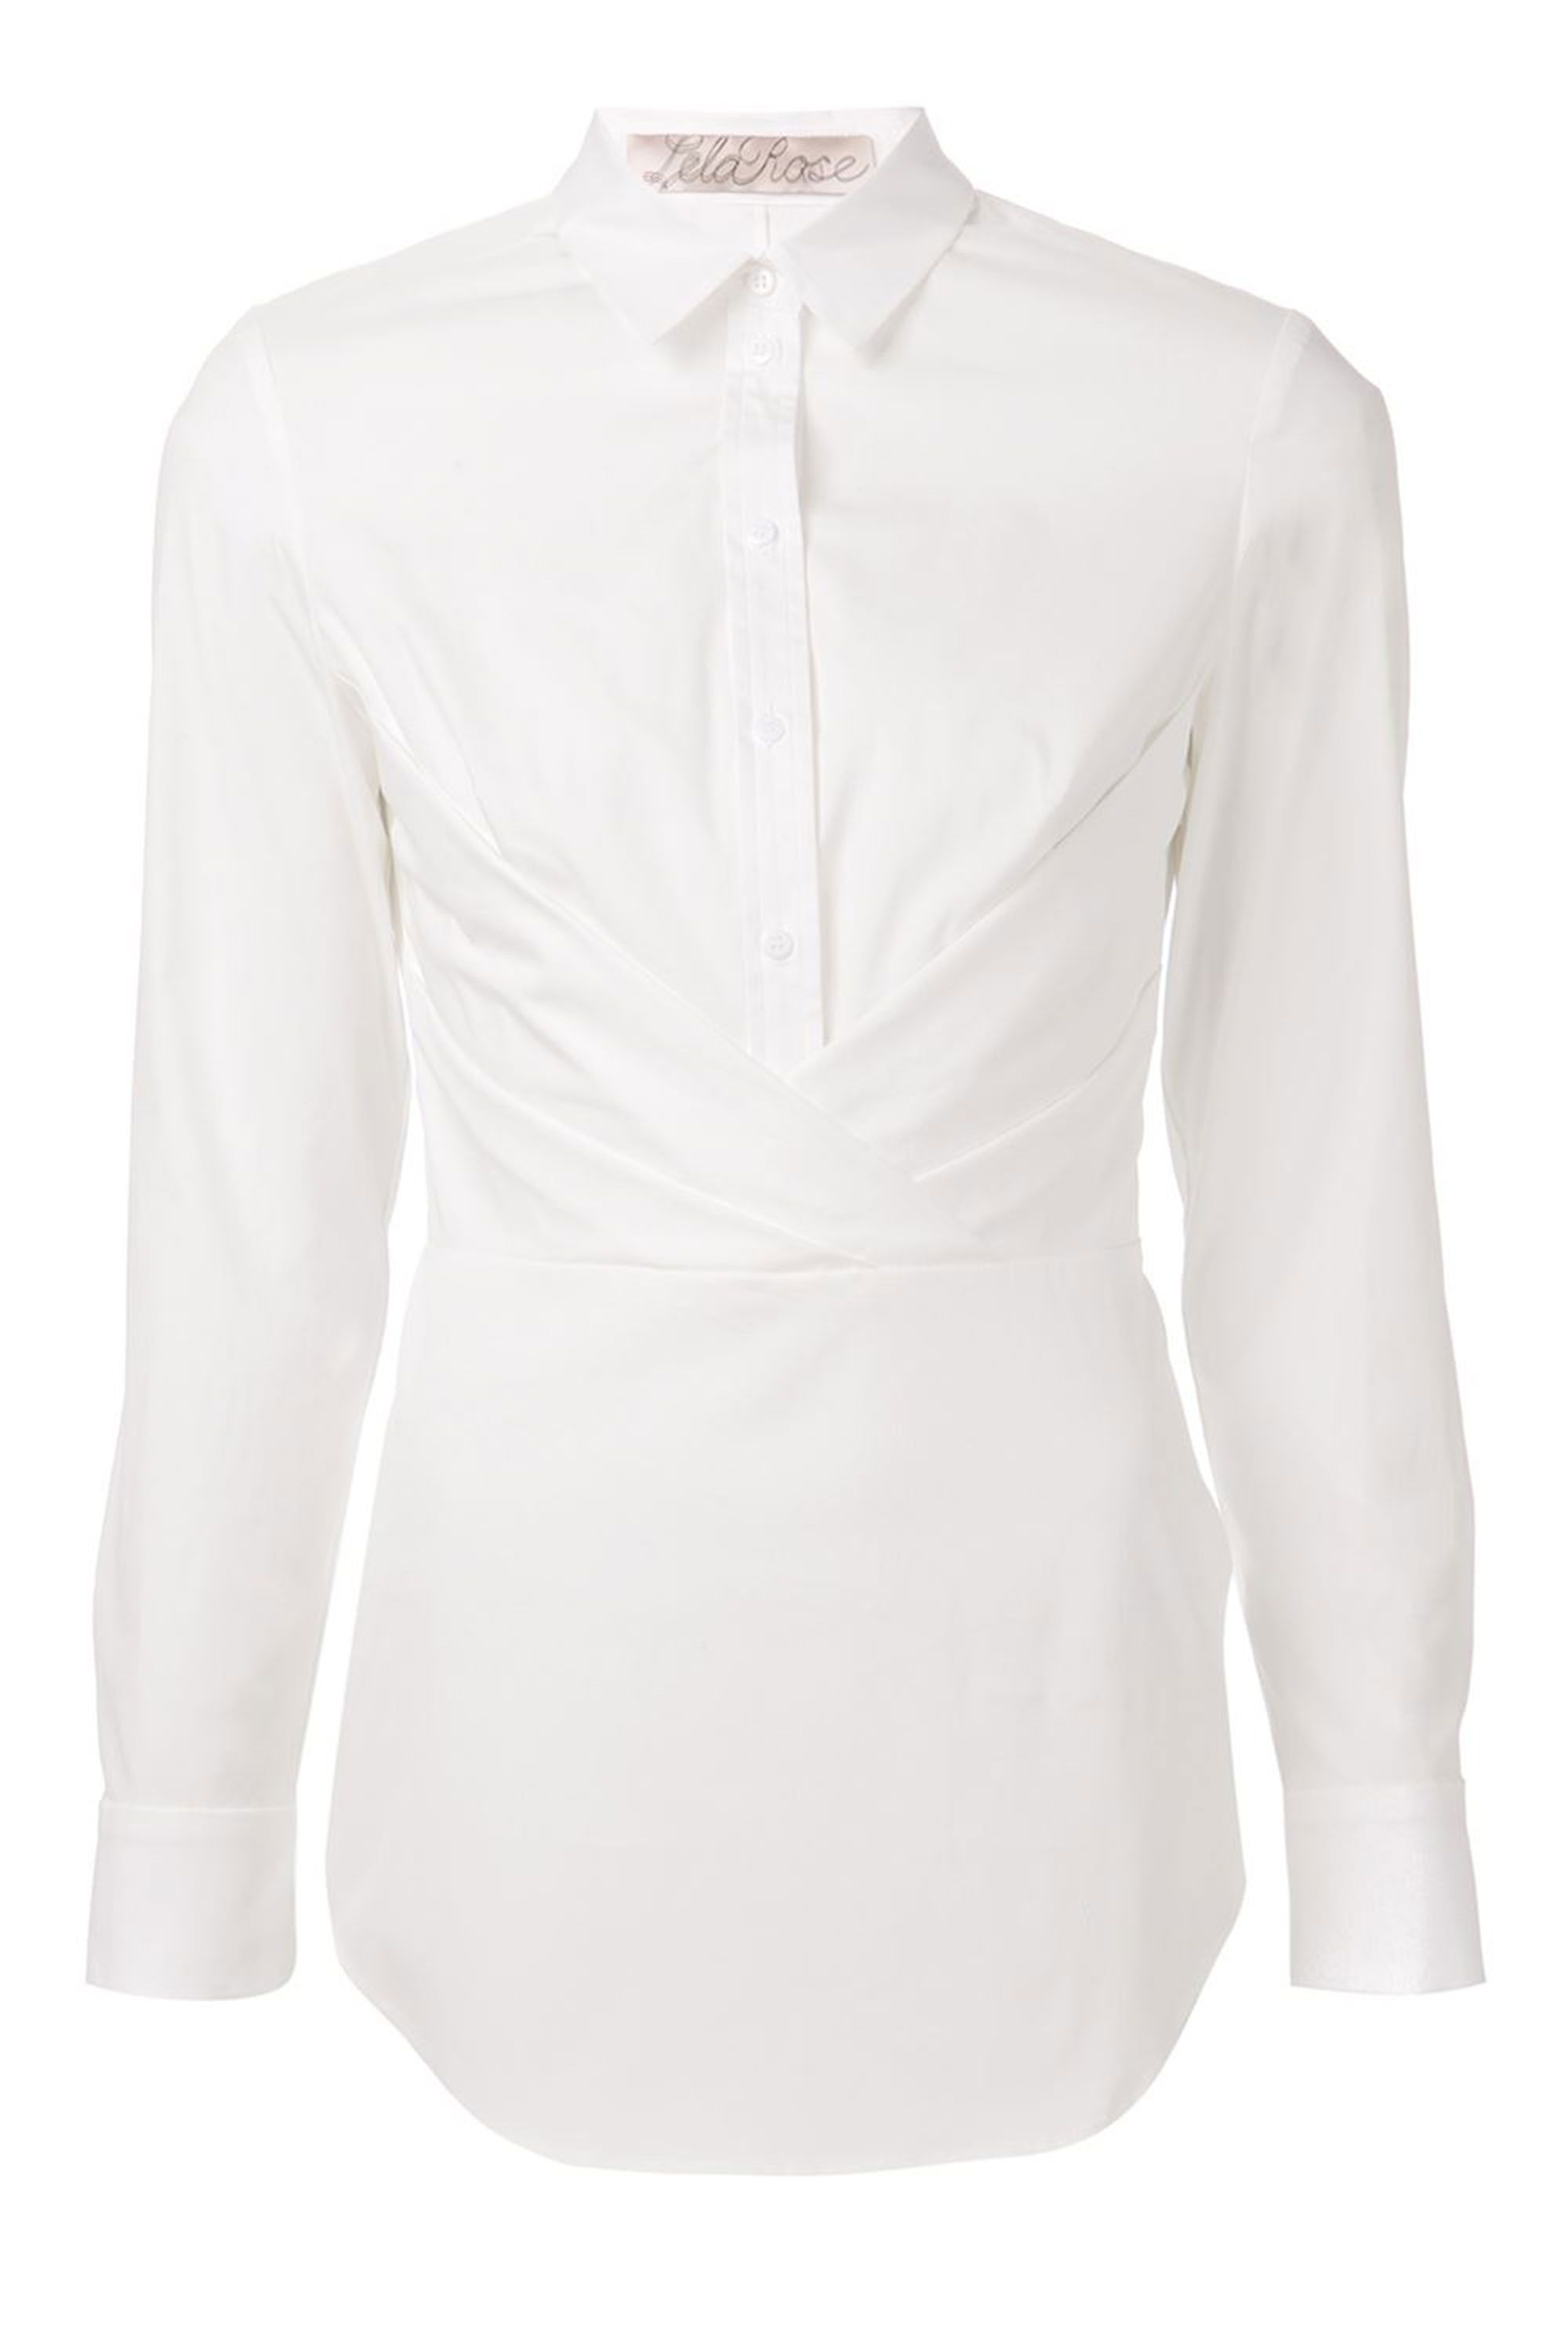 "The crisscross draping in the front gives off a sultry, bustier-like appearance.   Lela Rose Button-Down Shirt With Crisscross Drape, $695; <a target=""_blank"" href=""http://www.neimanmarcus.com/Lela-Rose-Button-Down-Drape-Shirt-Lace-Hem-Skirt/prod176610236/p.prod?icid=&searchType=MAIN&rte=%2FbrSearch.jsp%3Ffrom%3DbrSearch%26request_type%3Dsearch%26search_type%3Dkeyword%26q%3Dwhite%20shirt&eItemId=prod174080472&cmCat=search"">neimanmarcus.com</a>"